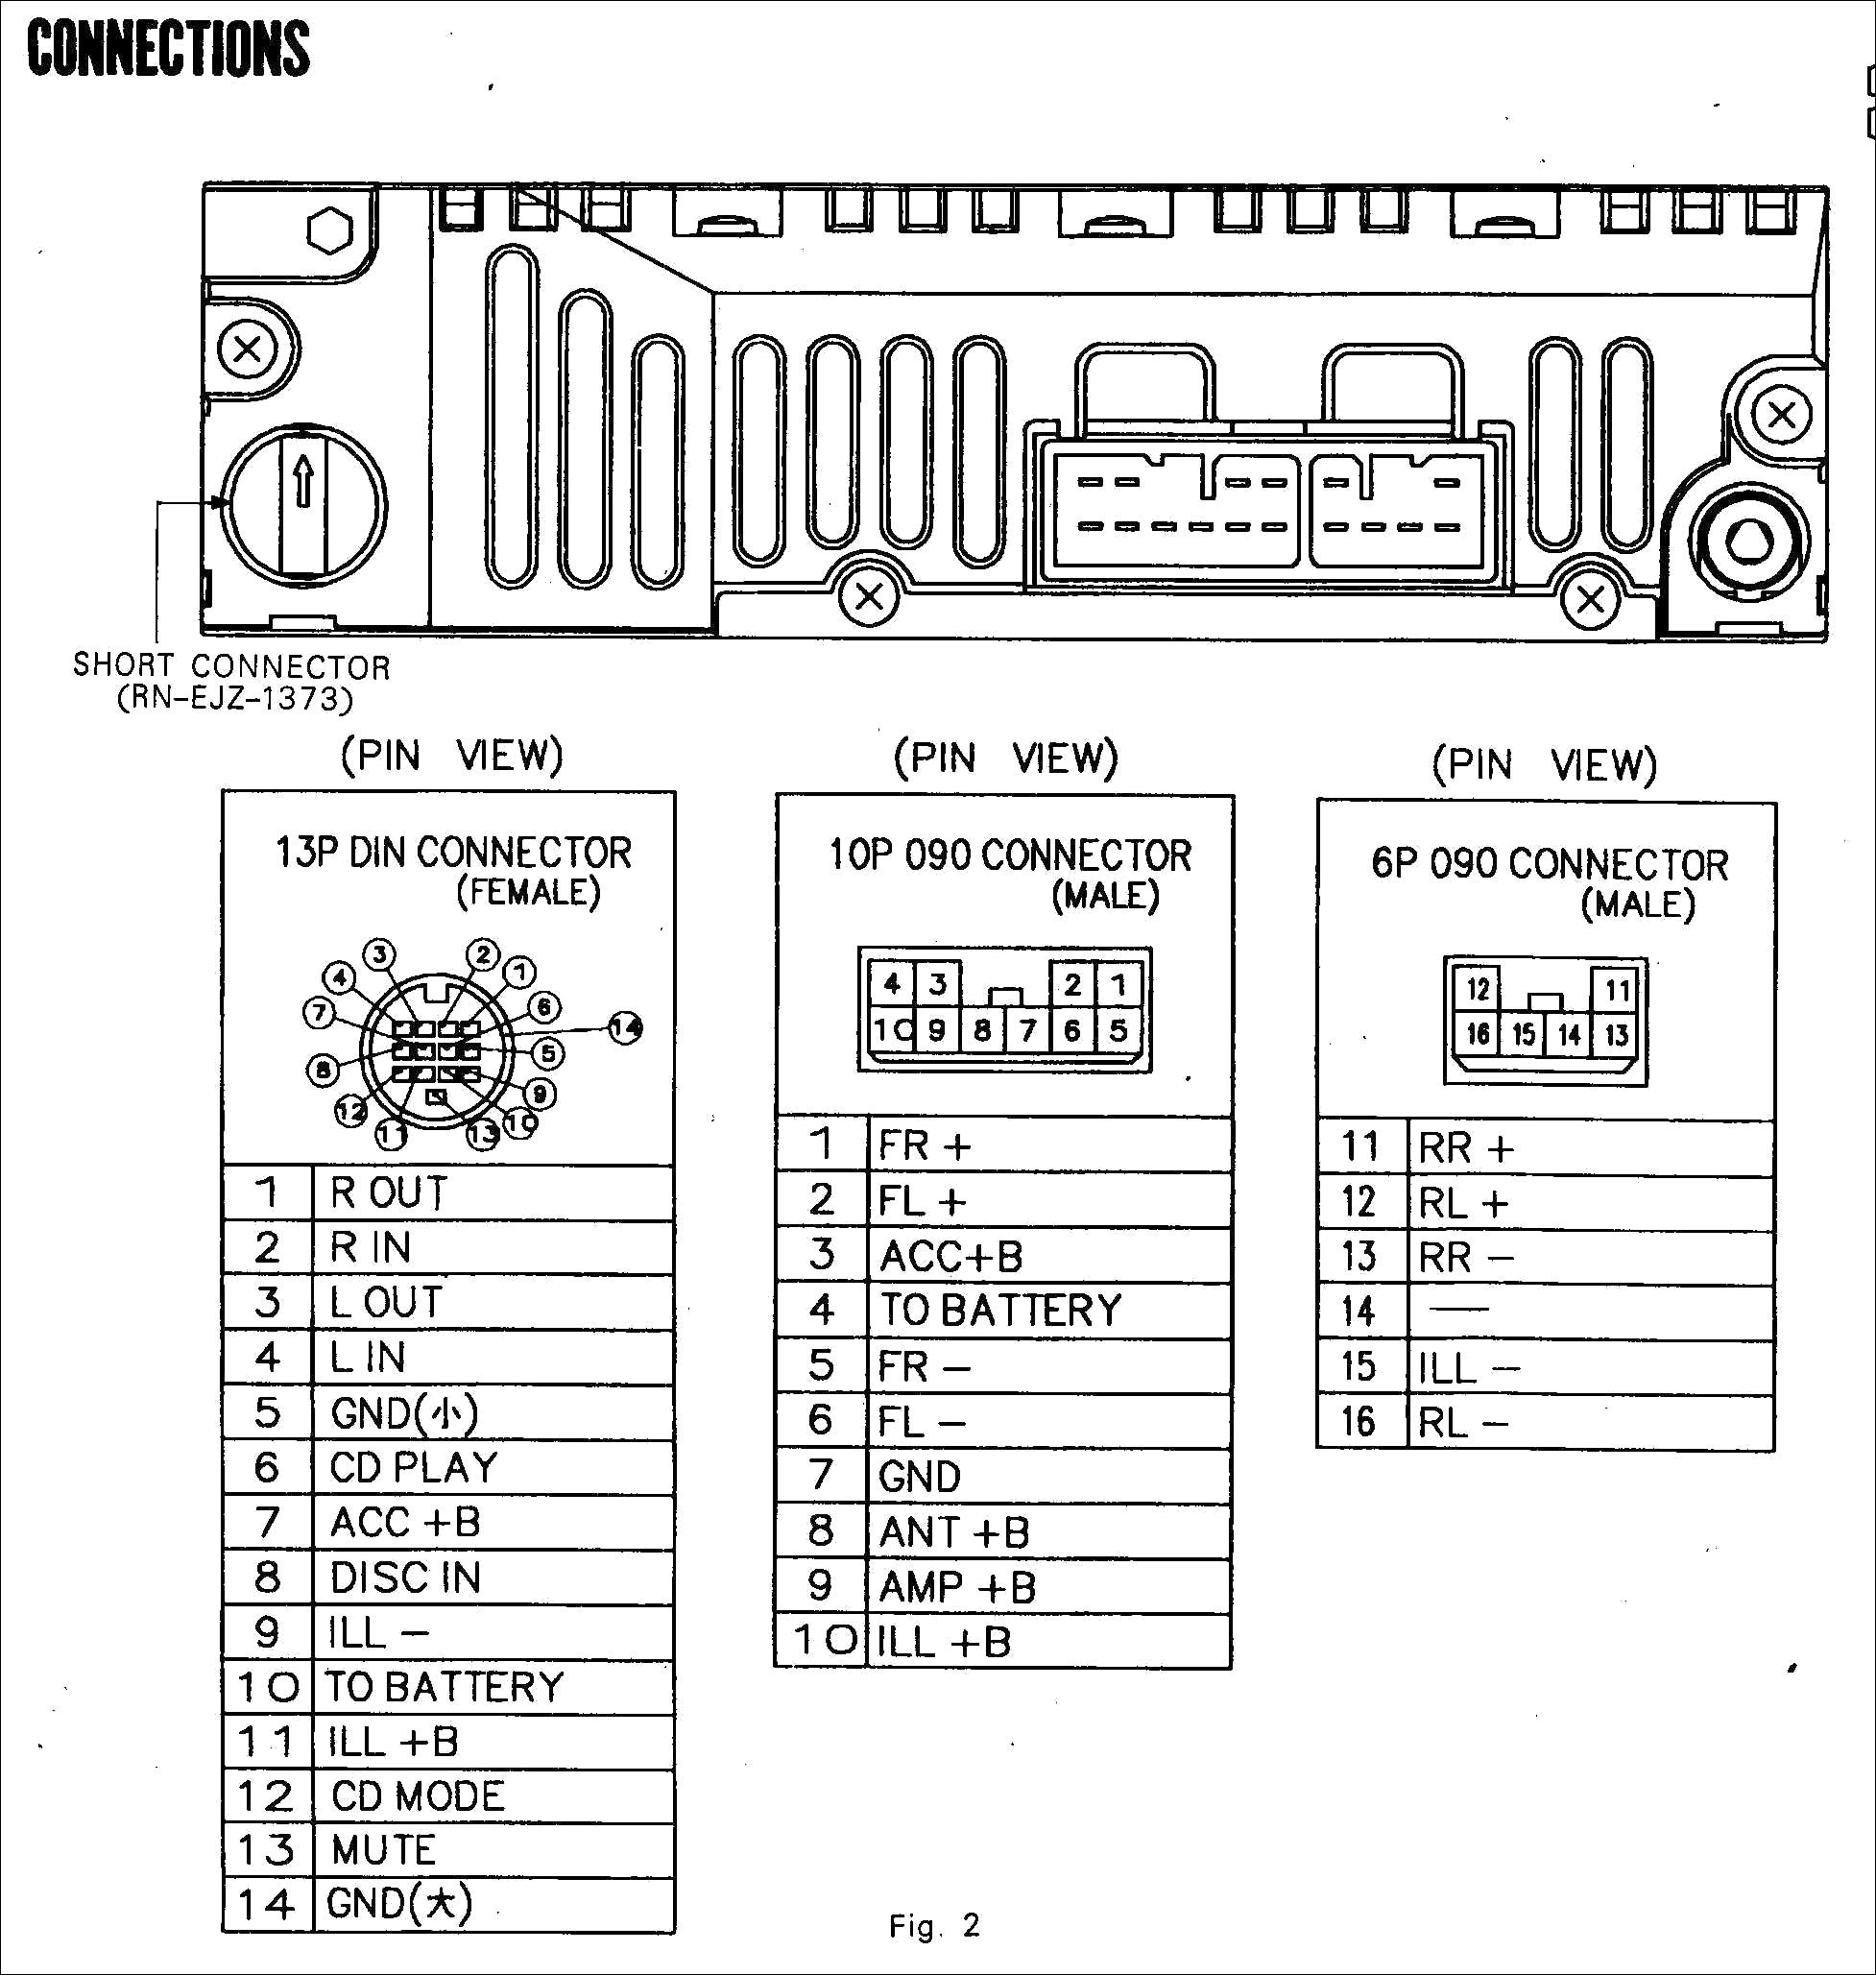 Deh Pioneer 16 Pin Wiring Harness Diagram from mainetreasurechest.com